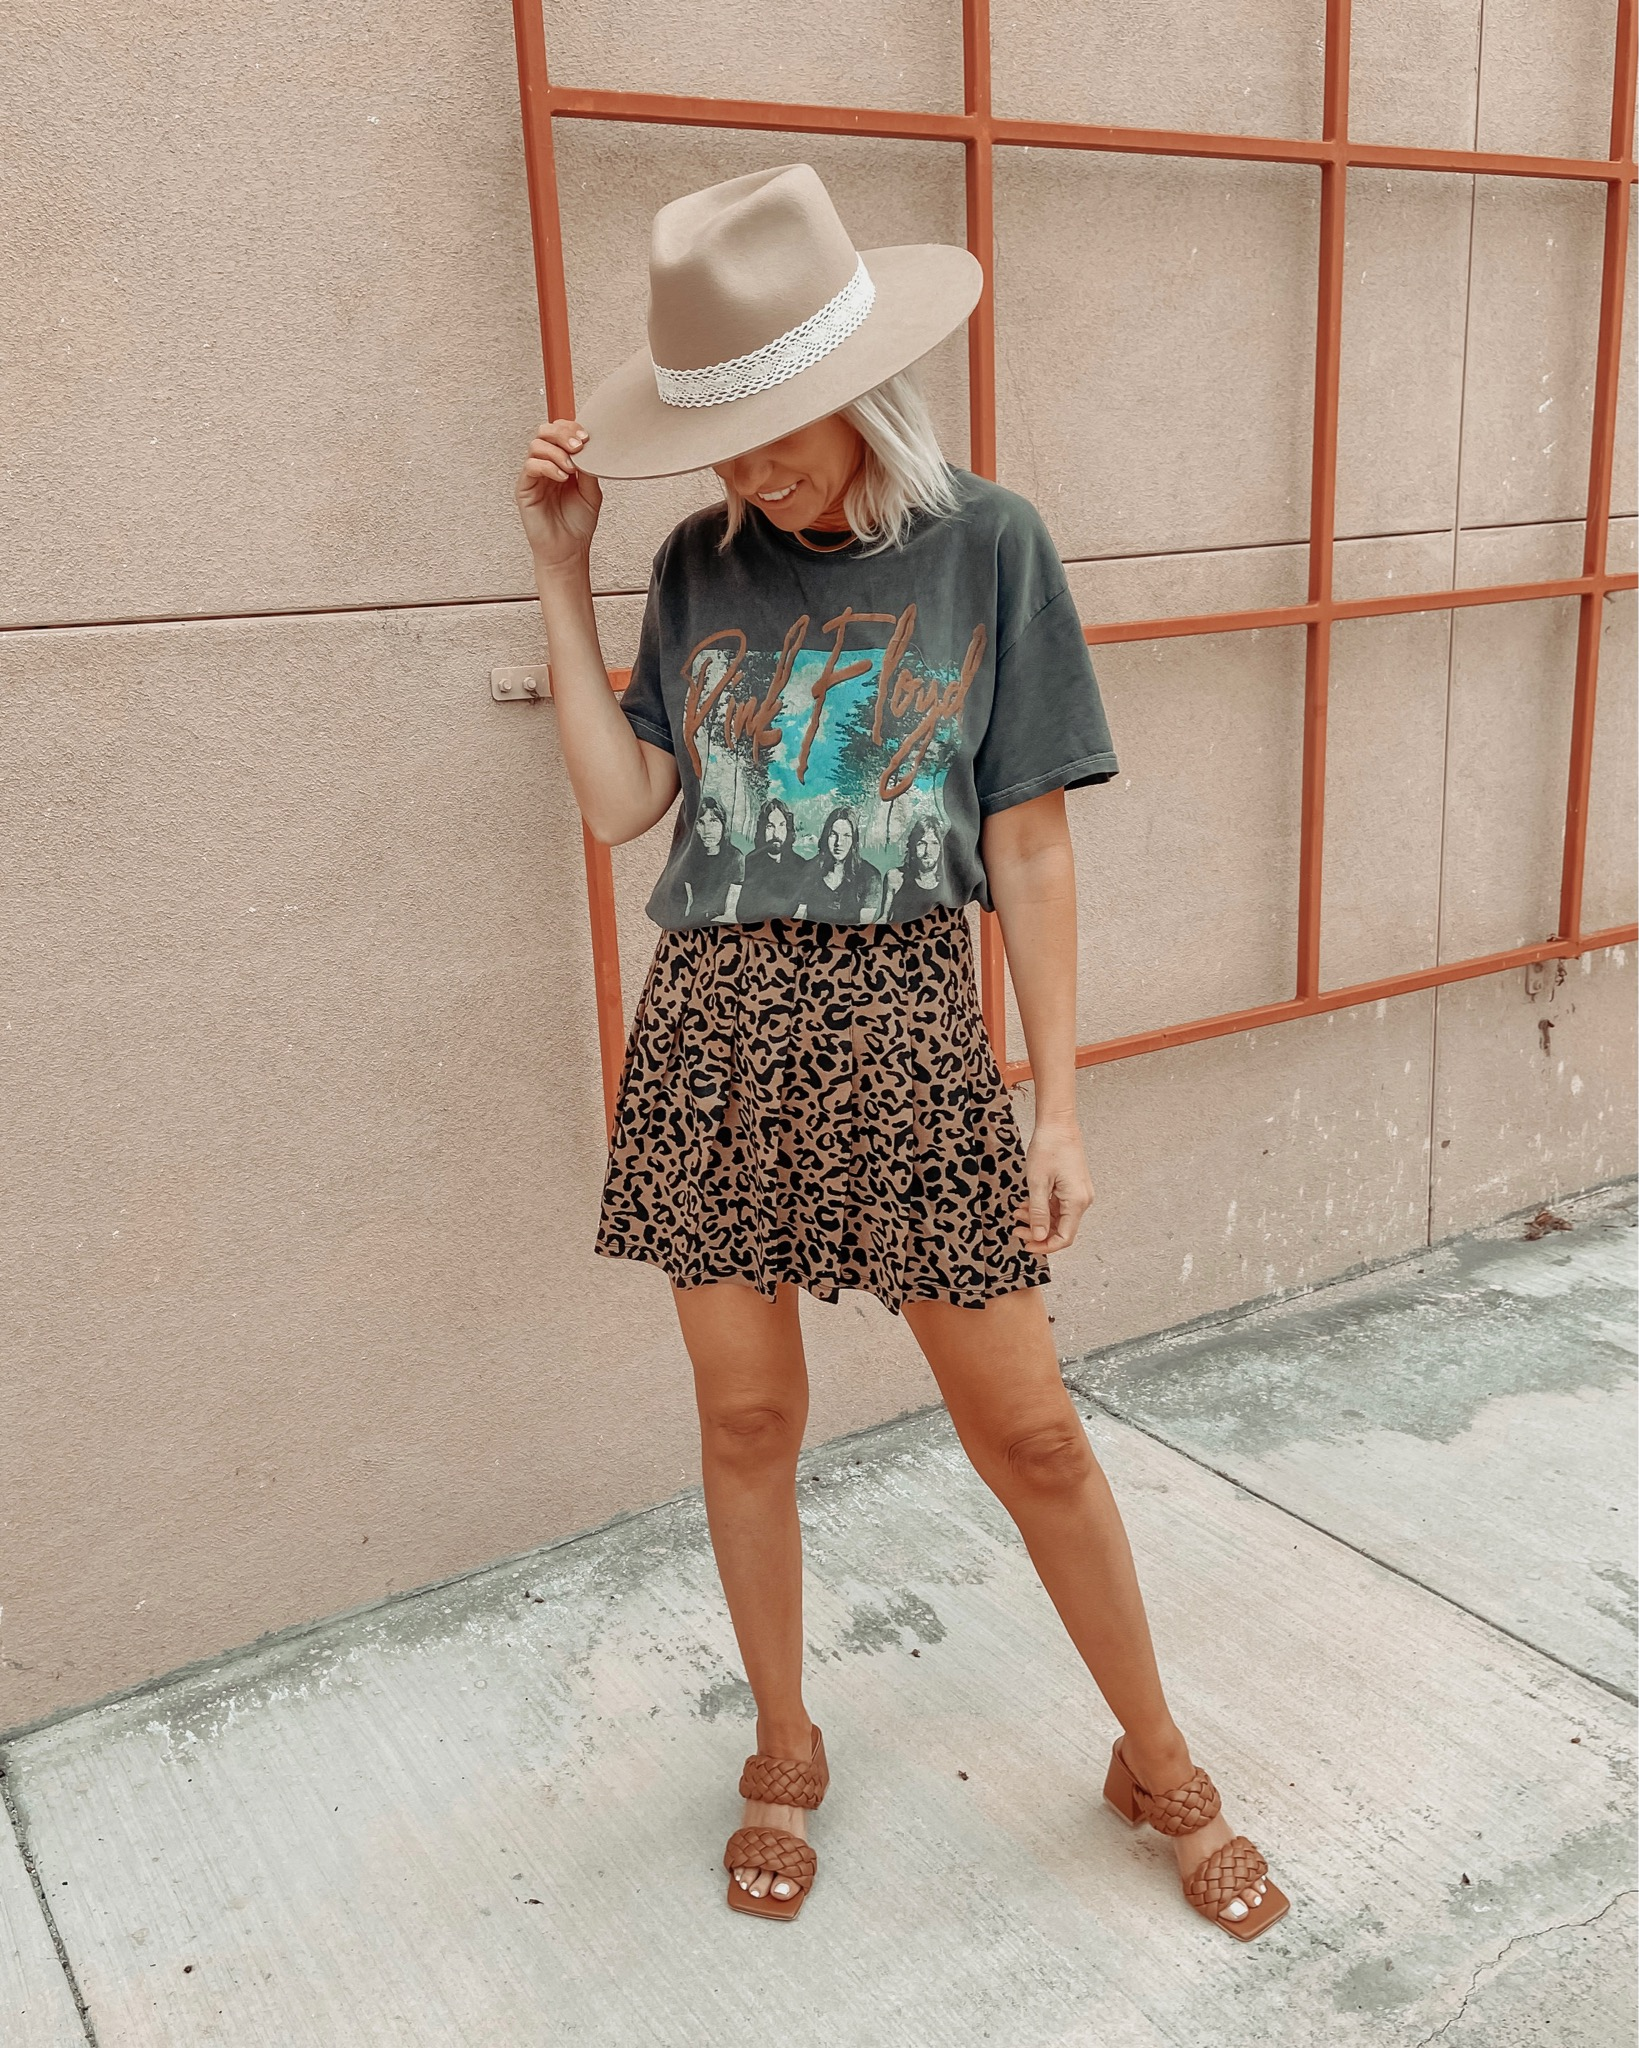 CRUSHING ON TENNIS SKIRTS- Jaclyn De Leon Style + Tennis skirts are the latest Spring trend + I'm sharing a few easy ways to style this look